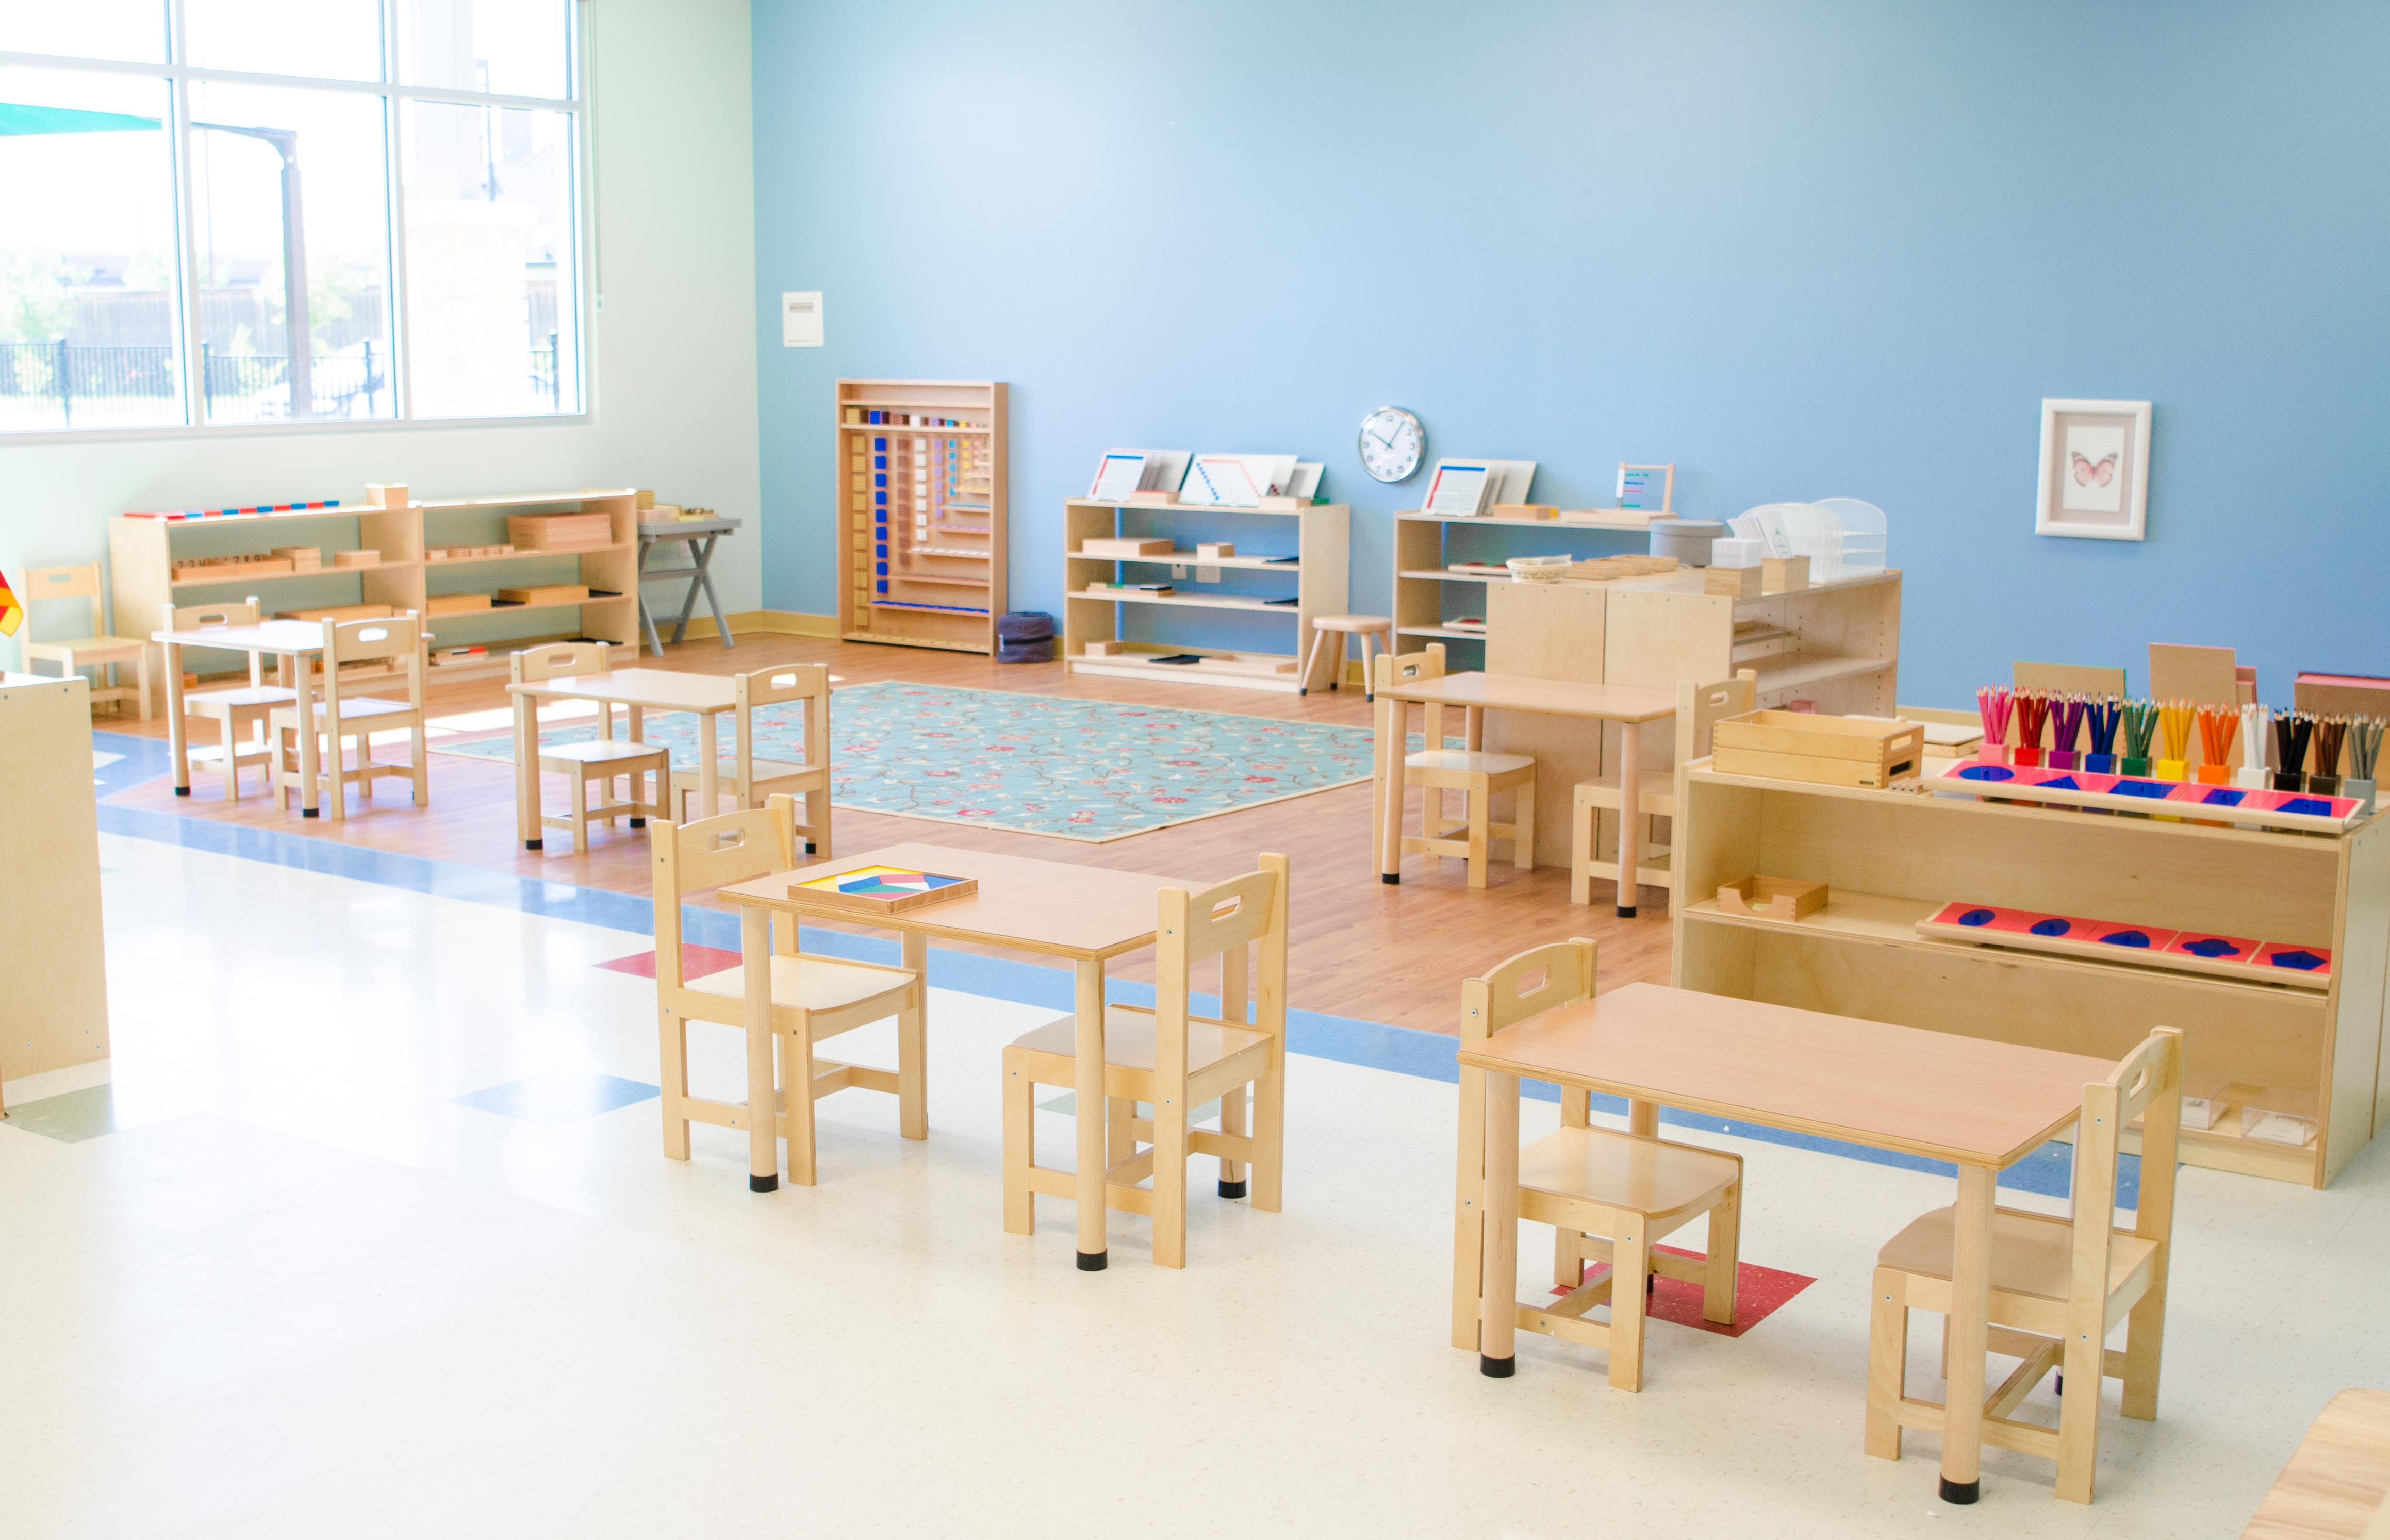 Montessori classroom at Guidepost Montessori